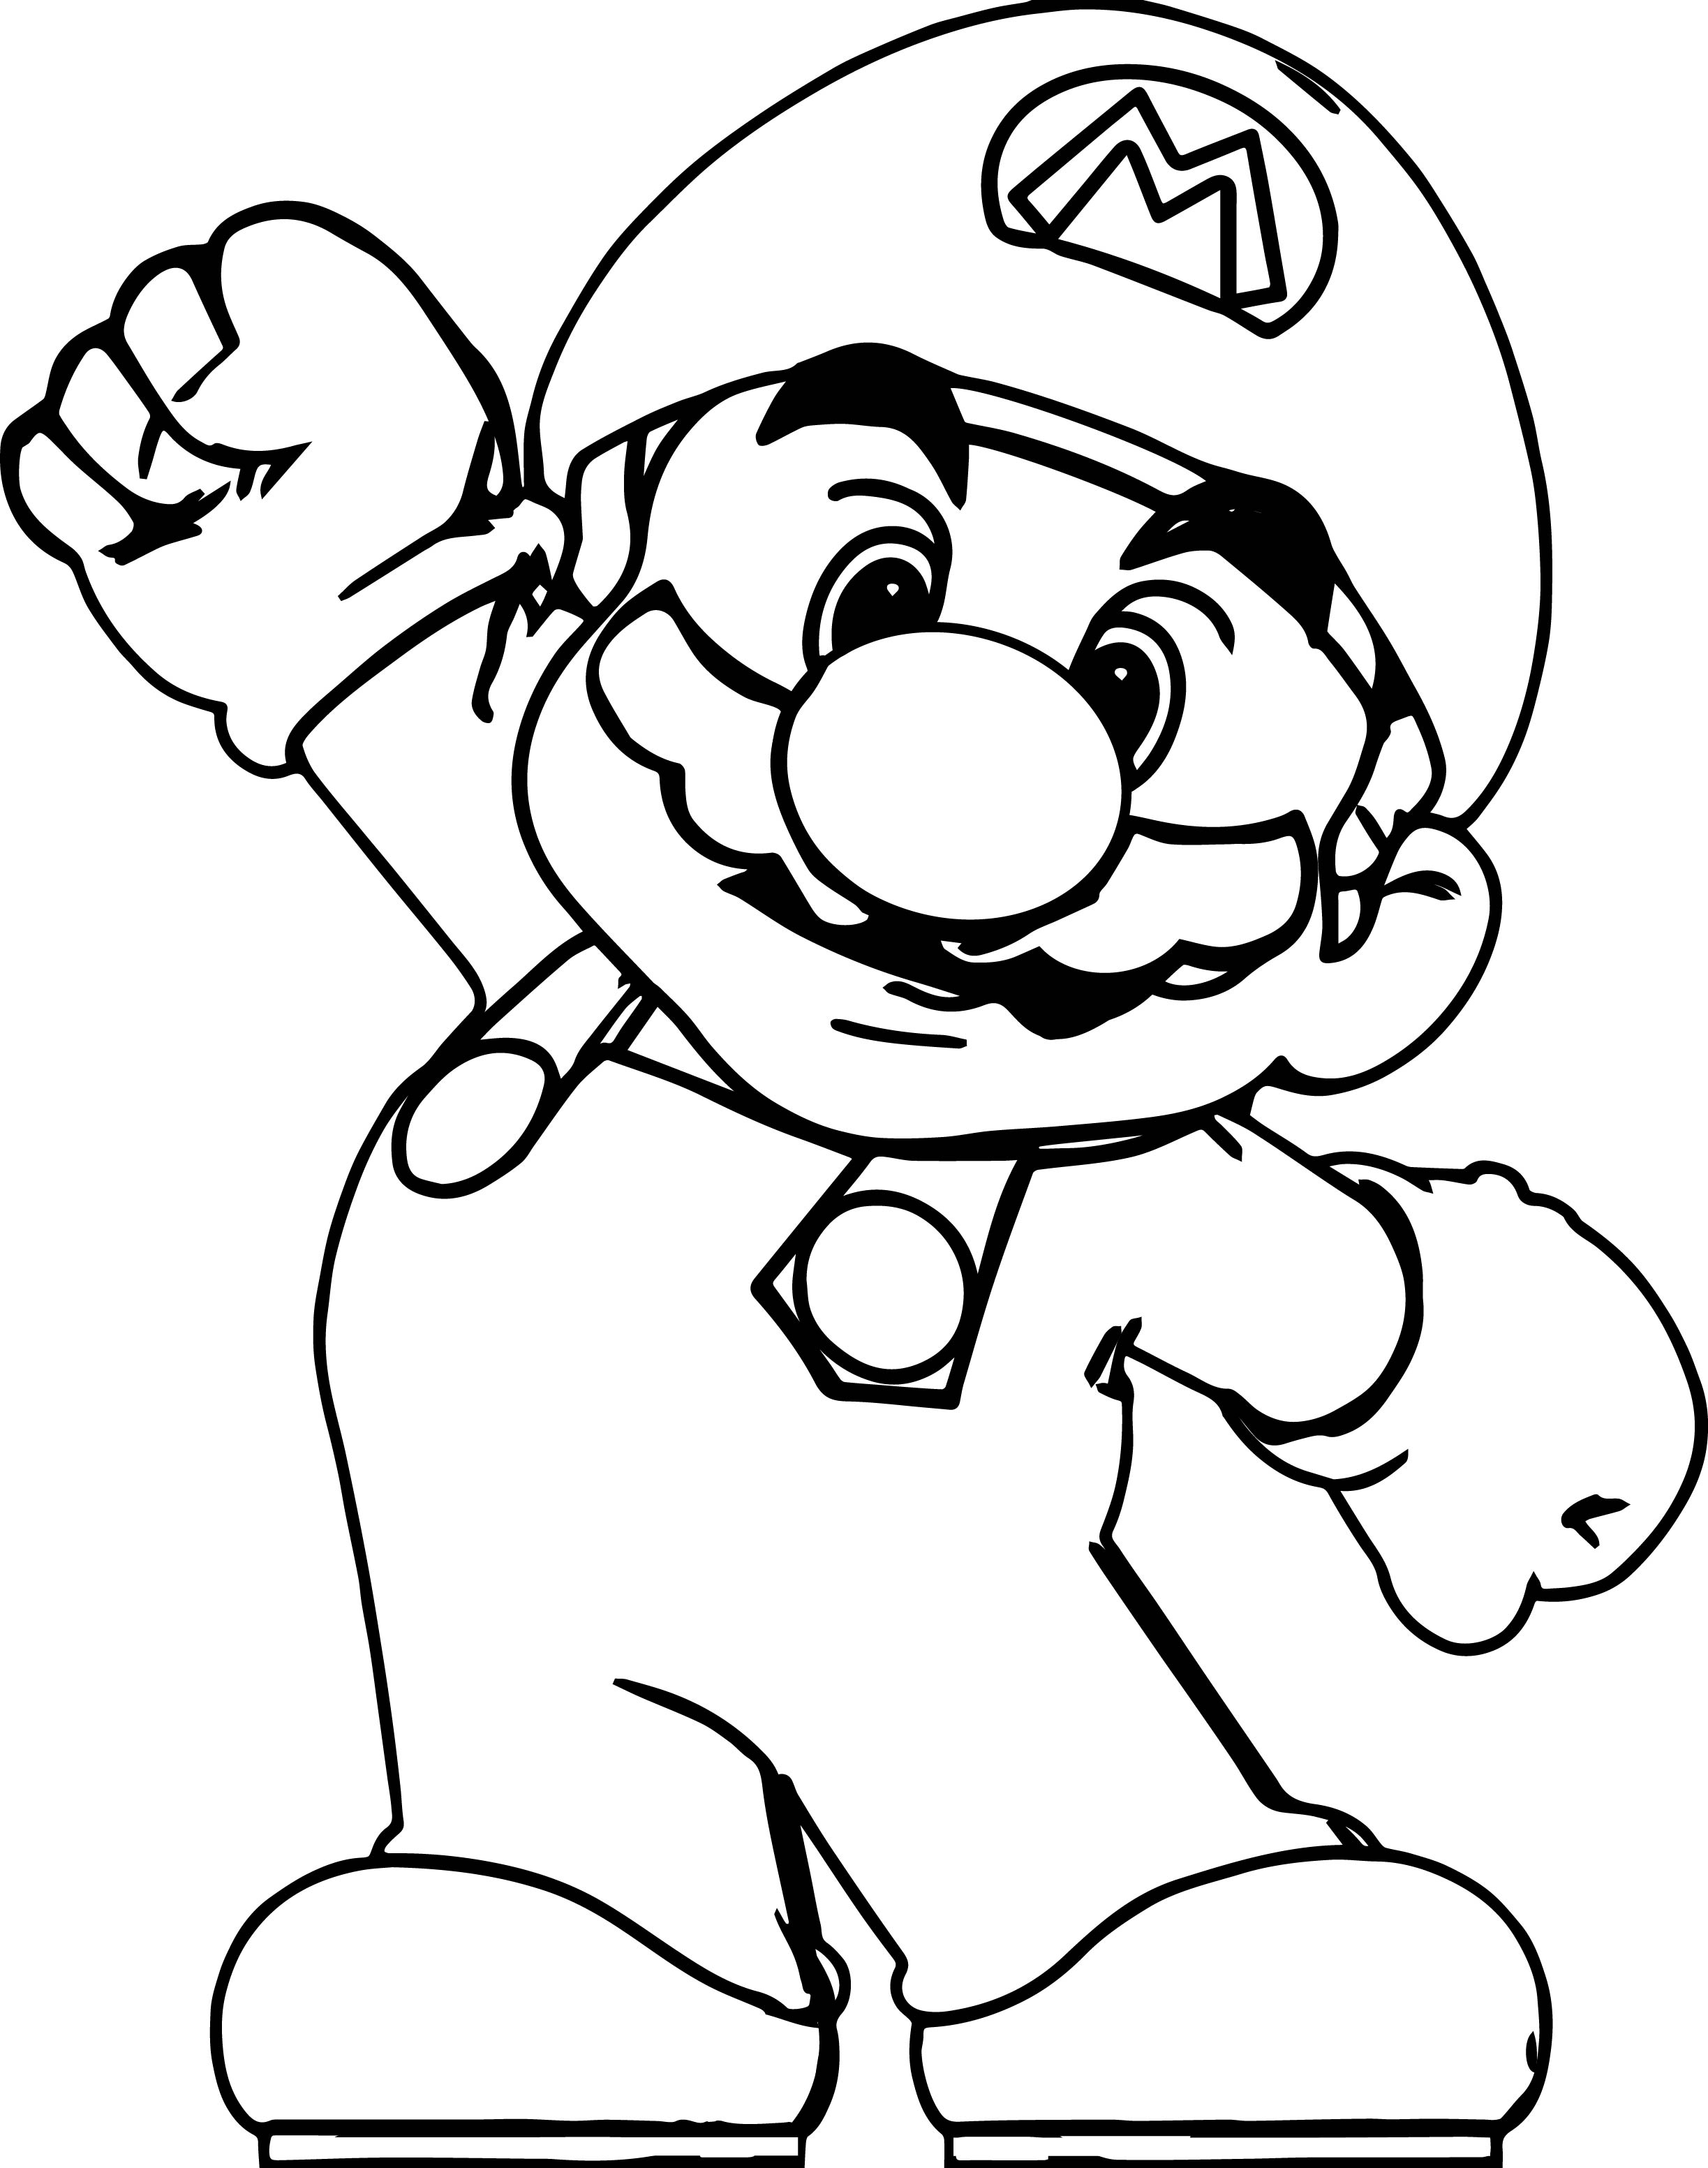 The Great Gape Show Coloring Pages